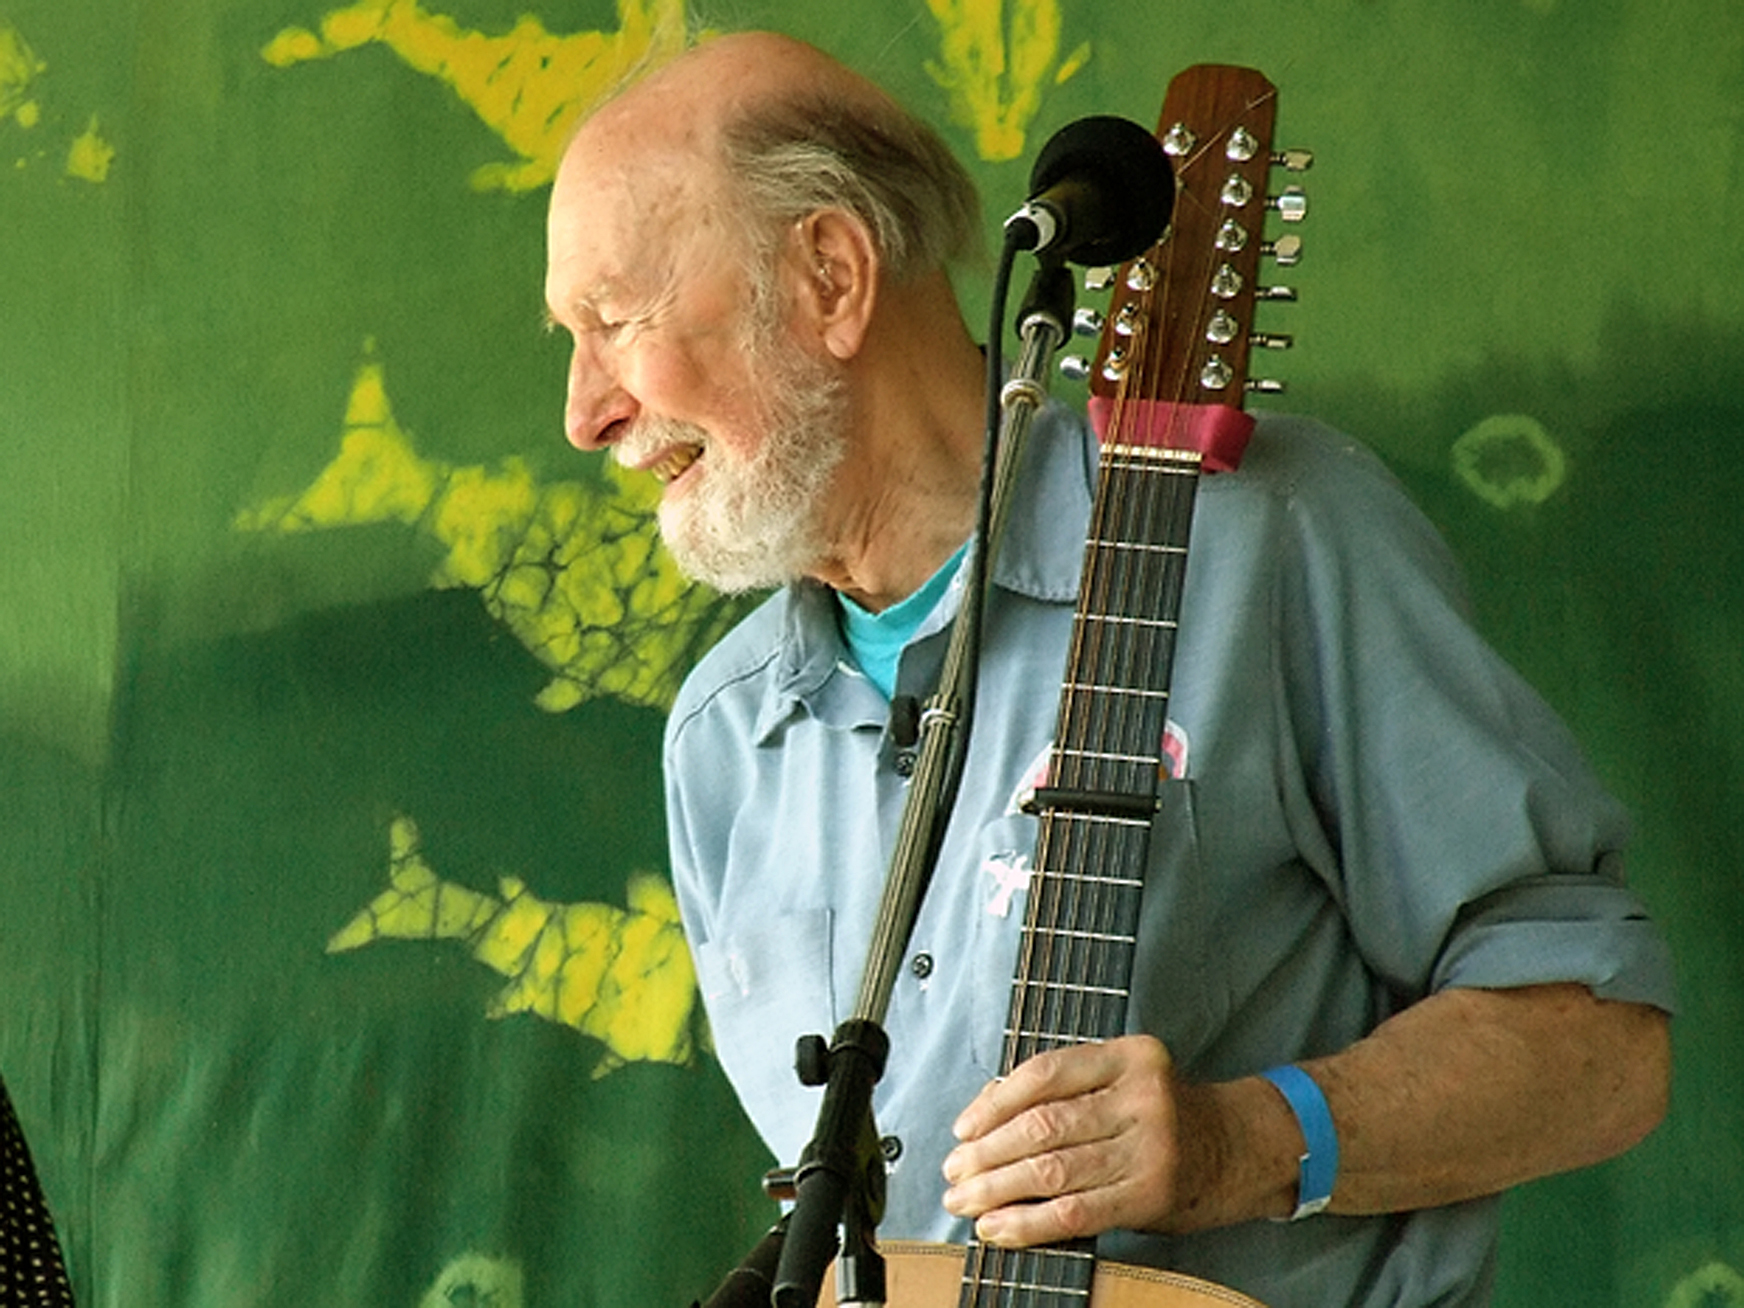 http://upload.wikimedia.org/wikipedia/commons/0/0c/Pete_Seeger2_-_6-16-07_Photo_by_Anthony_Pepitone.jpg